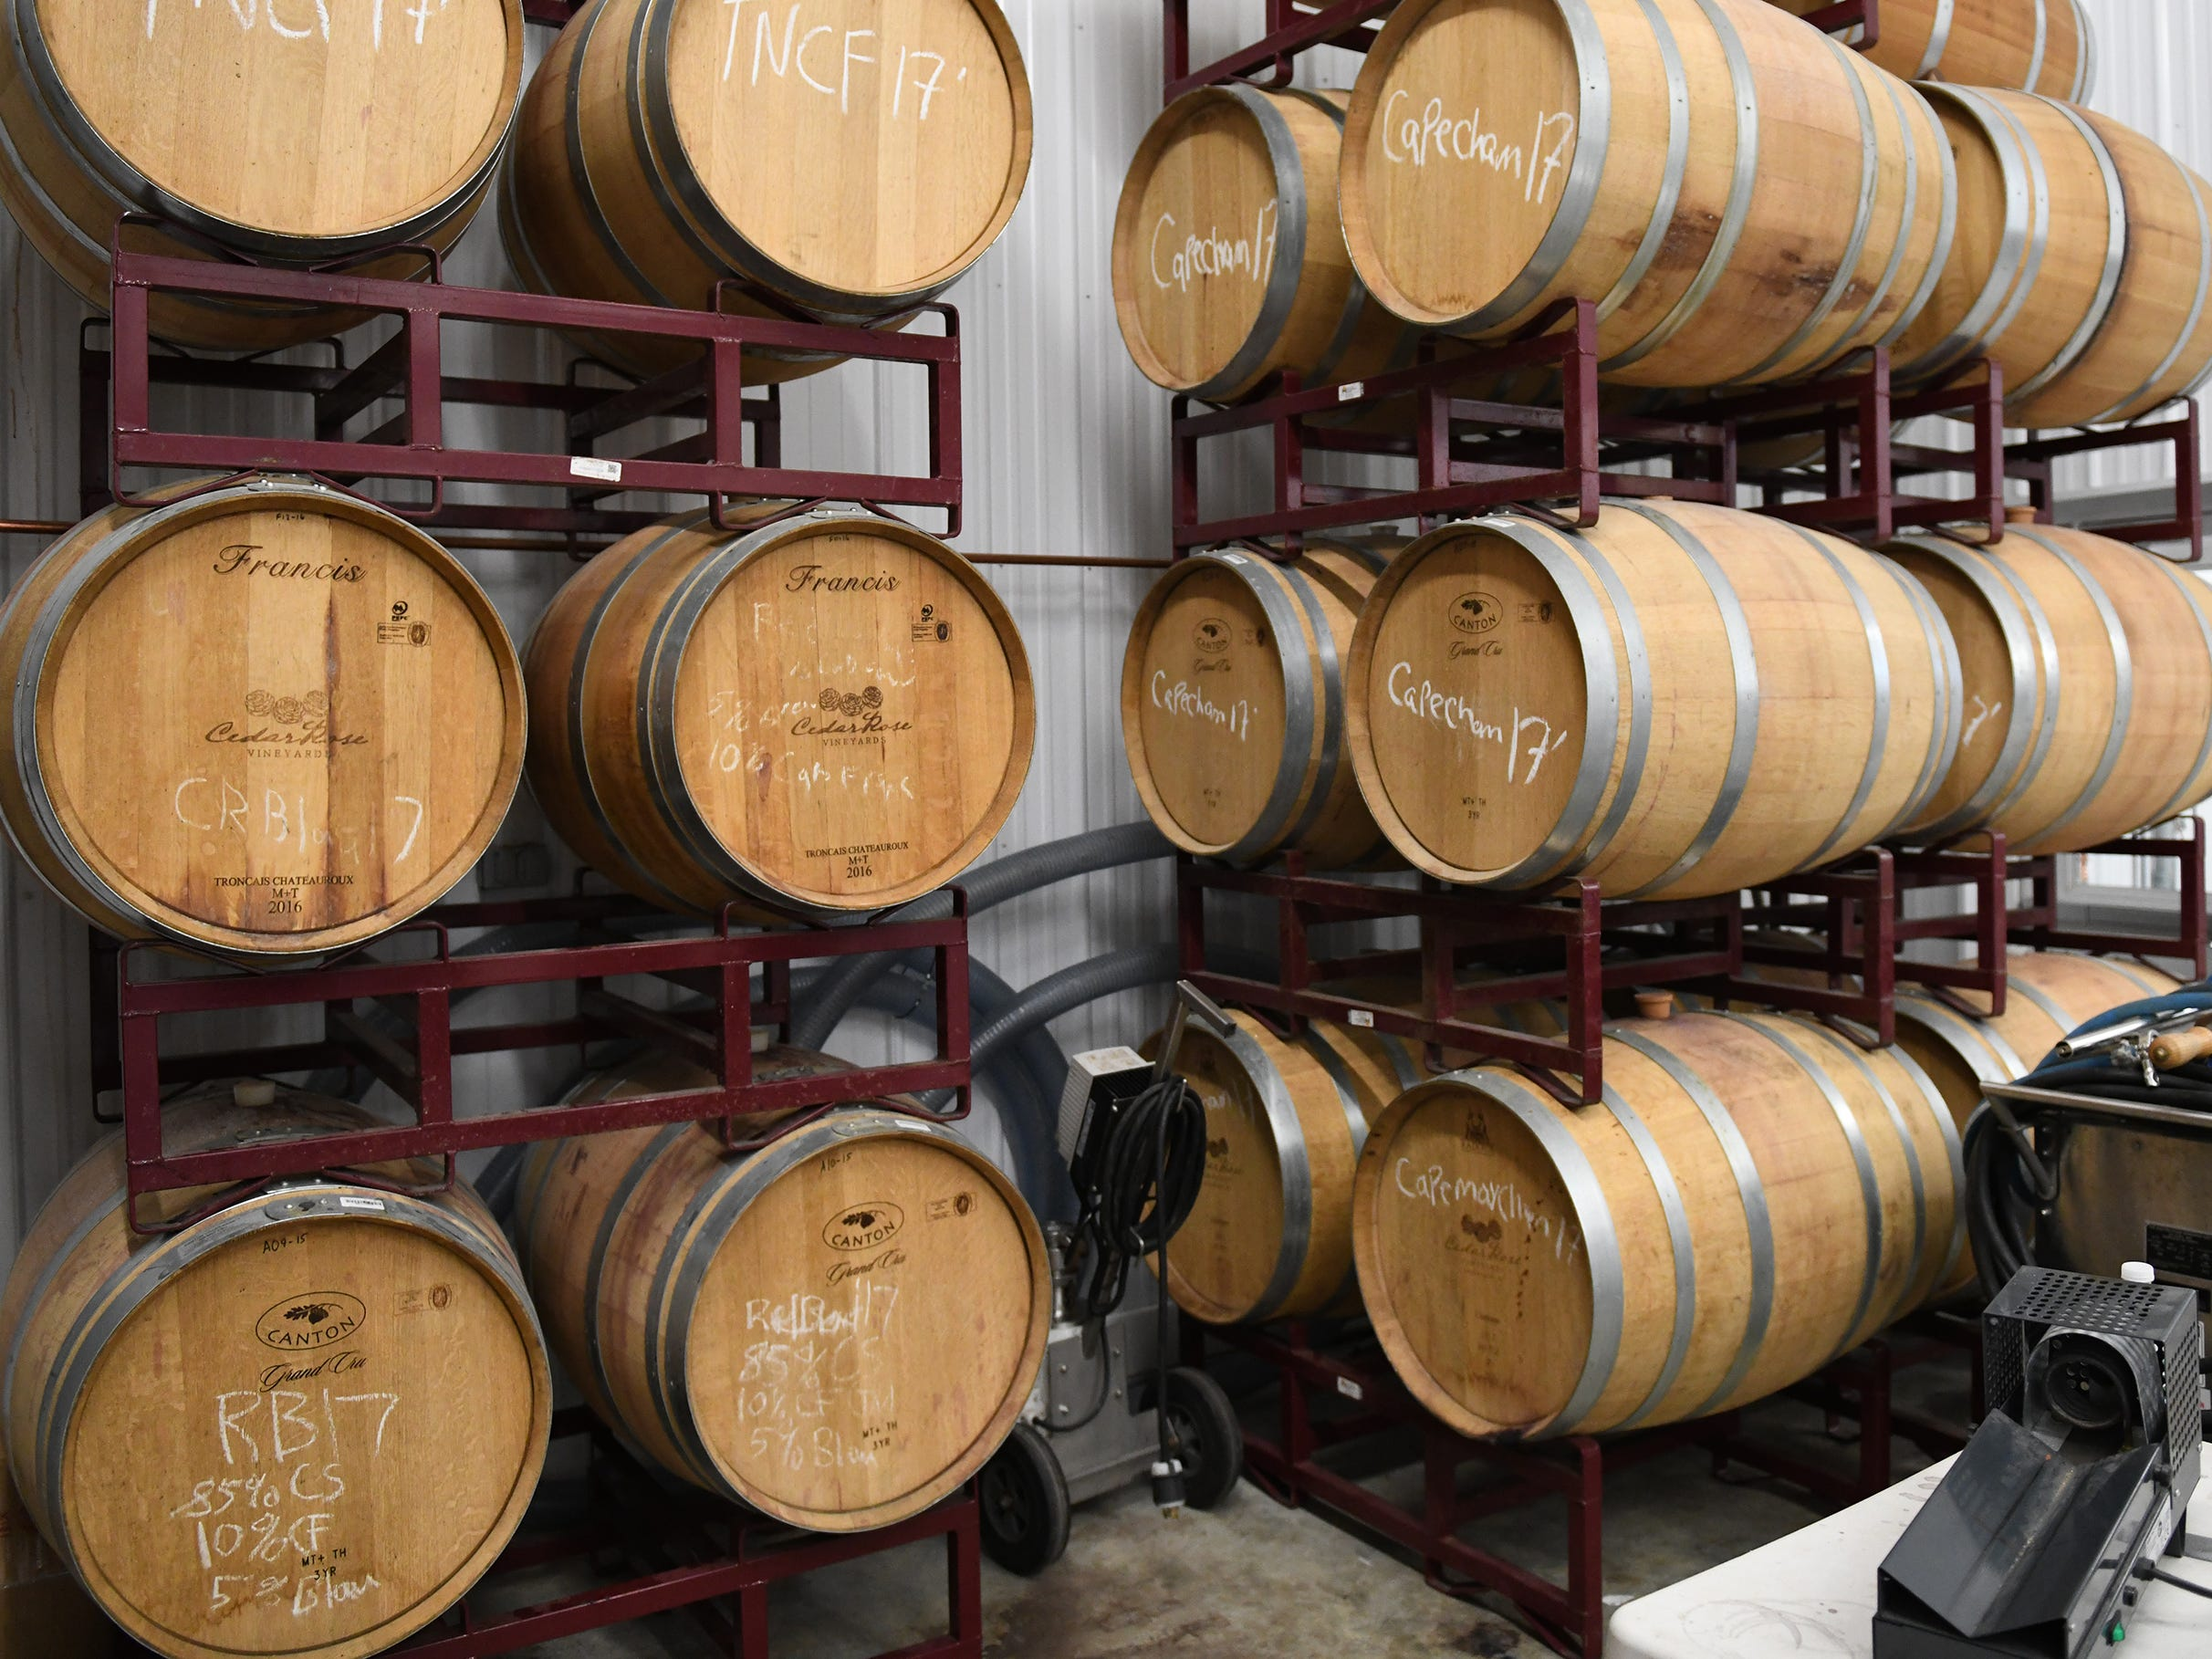 Barrels of wine are held in storage at Cedar Rose Vineyards in Rosenhayn, pictured here on Tuesday, January 8, 2019.